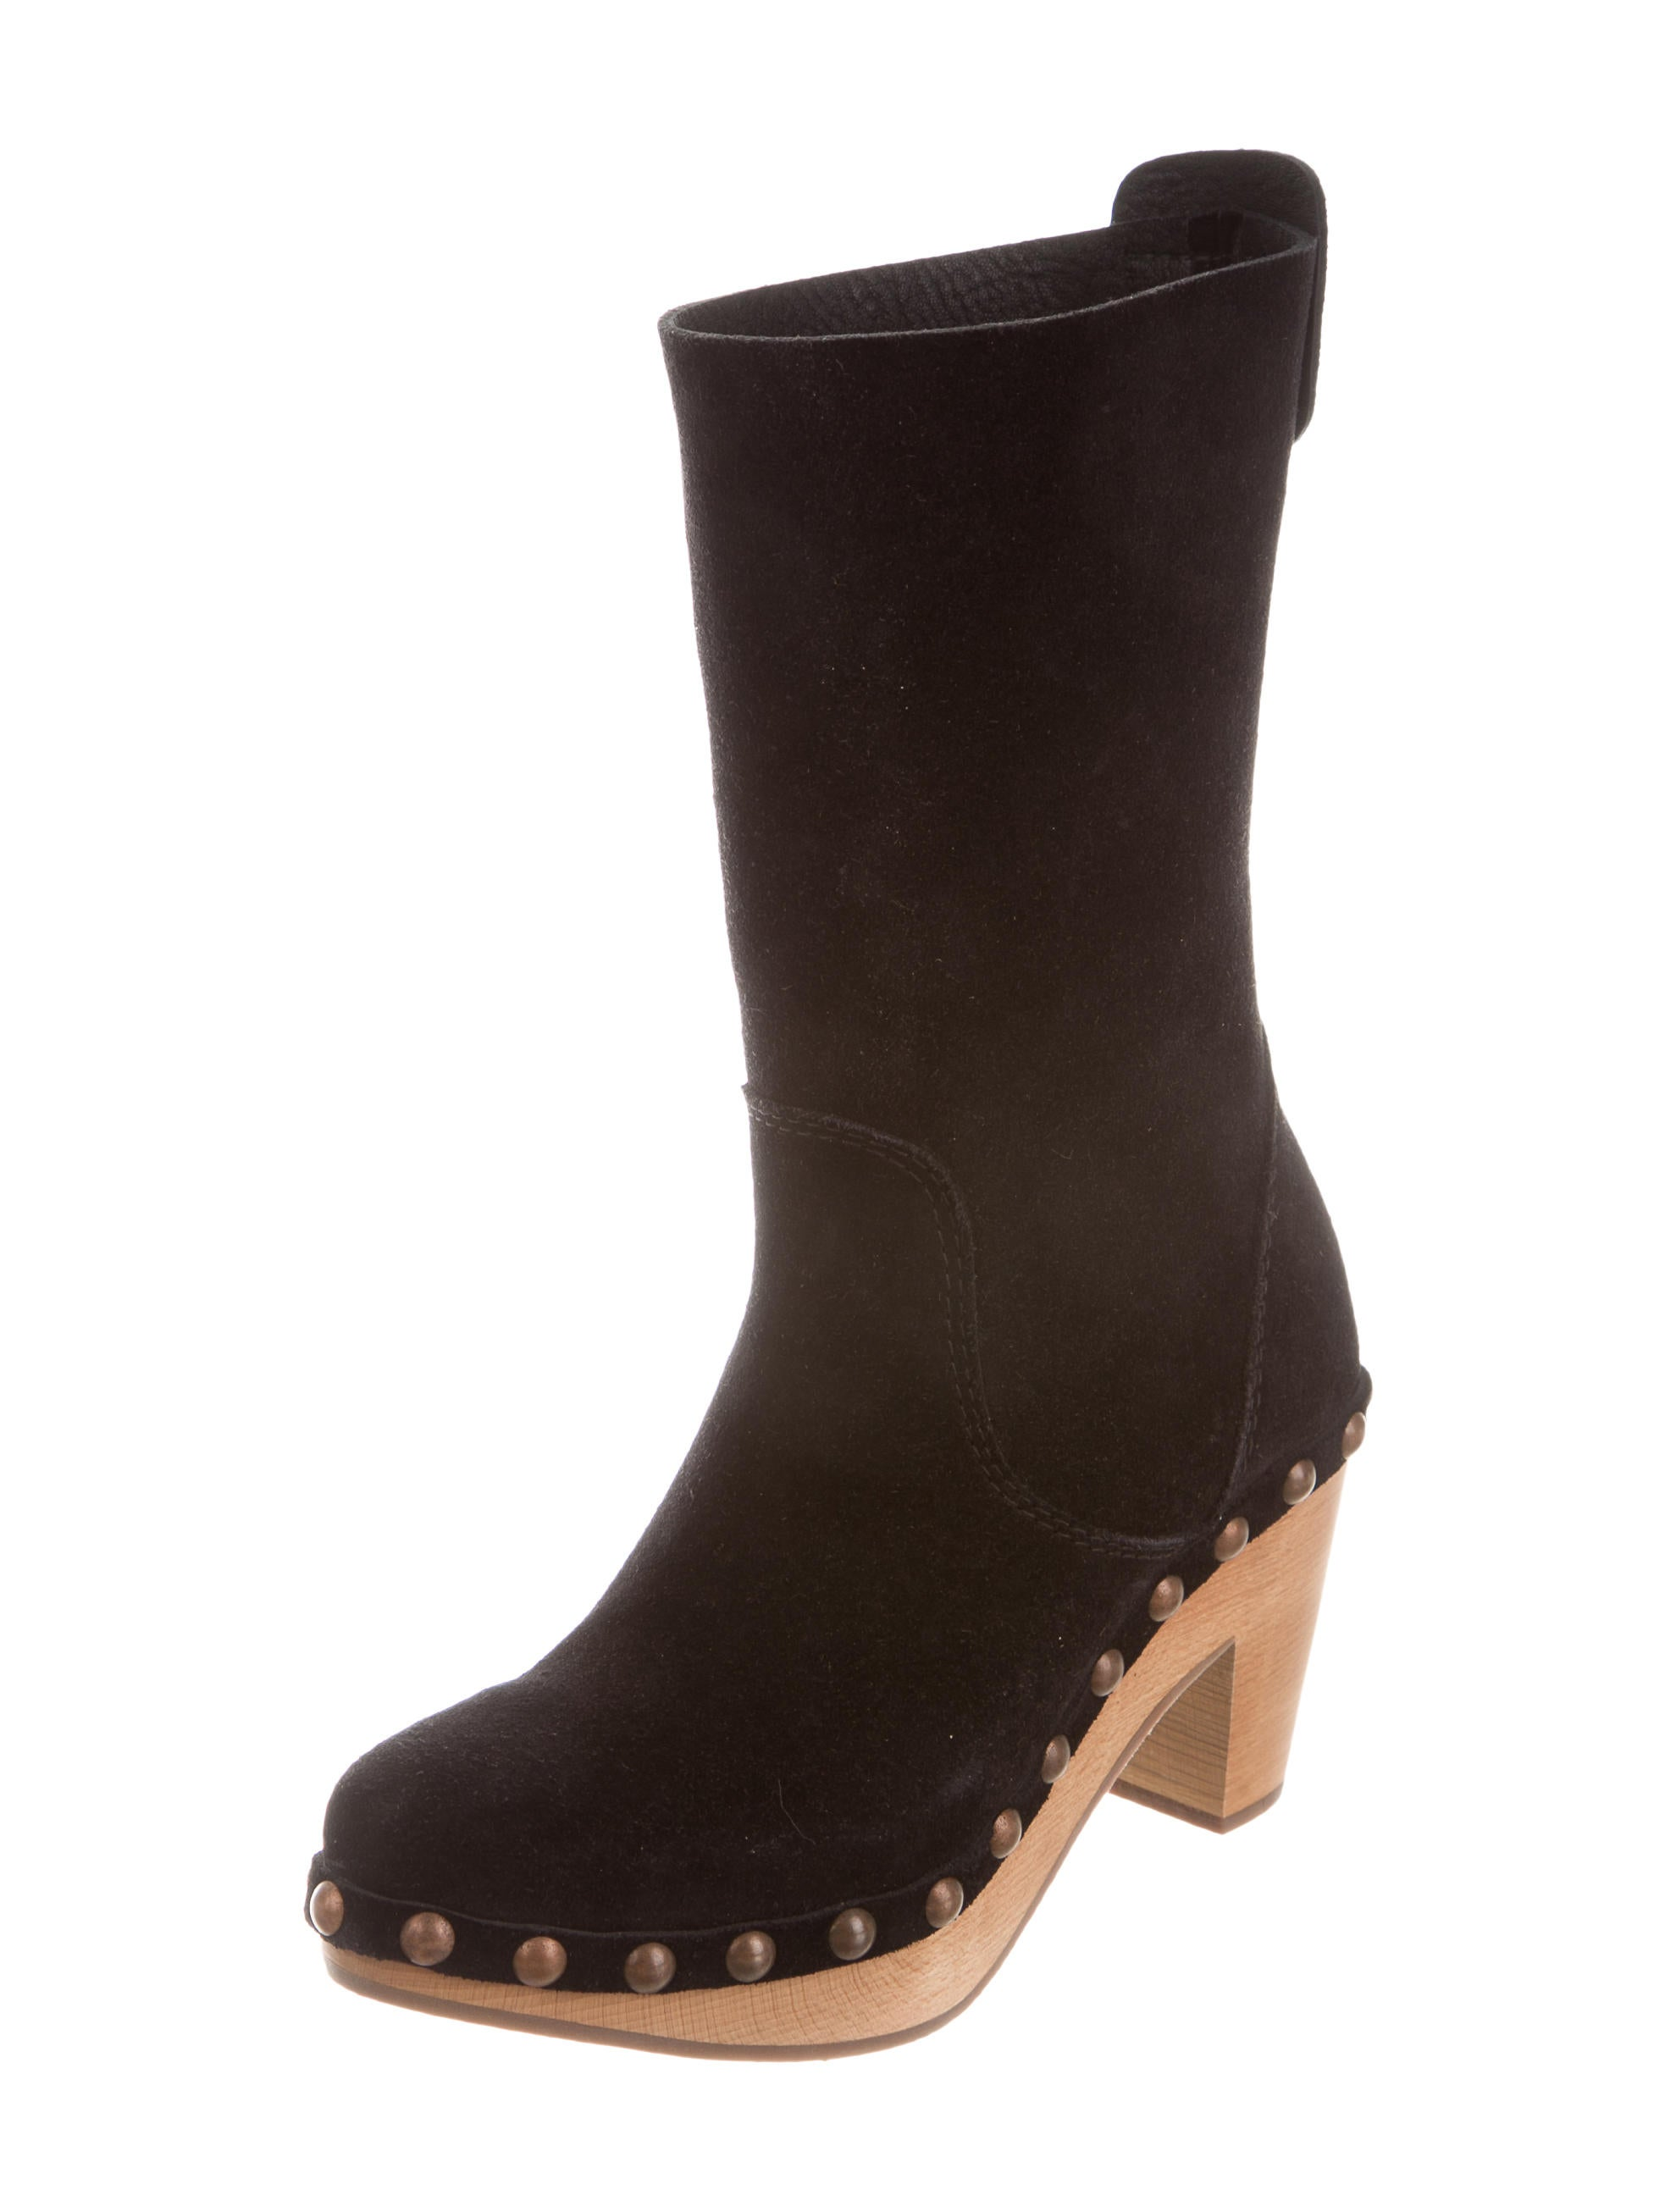 pedro garcia suede mid calf boots shoes ped22535 the